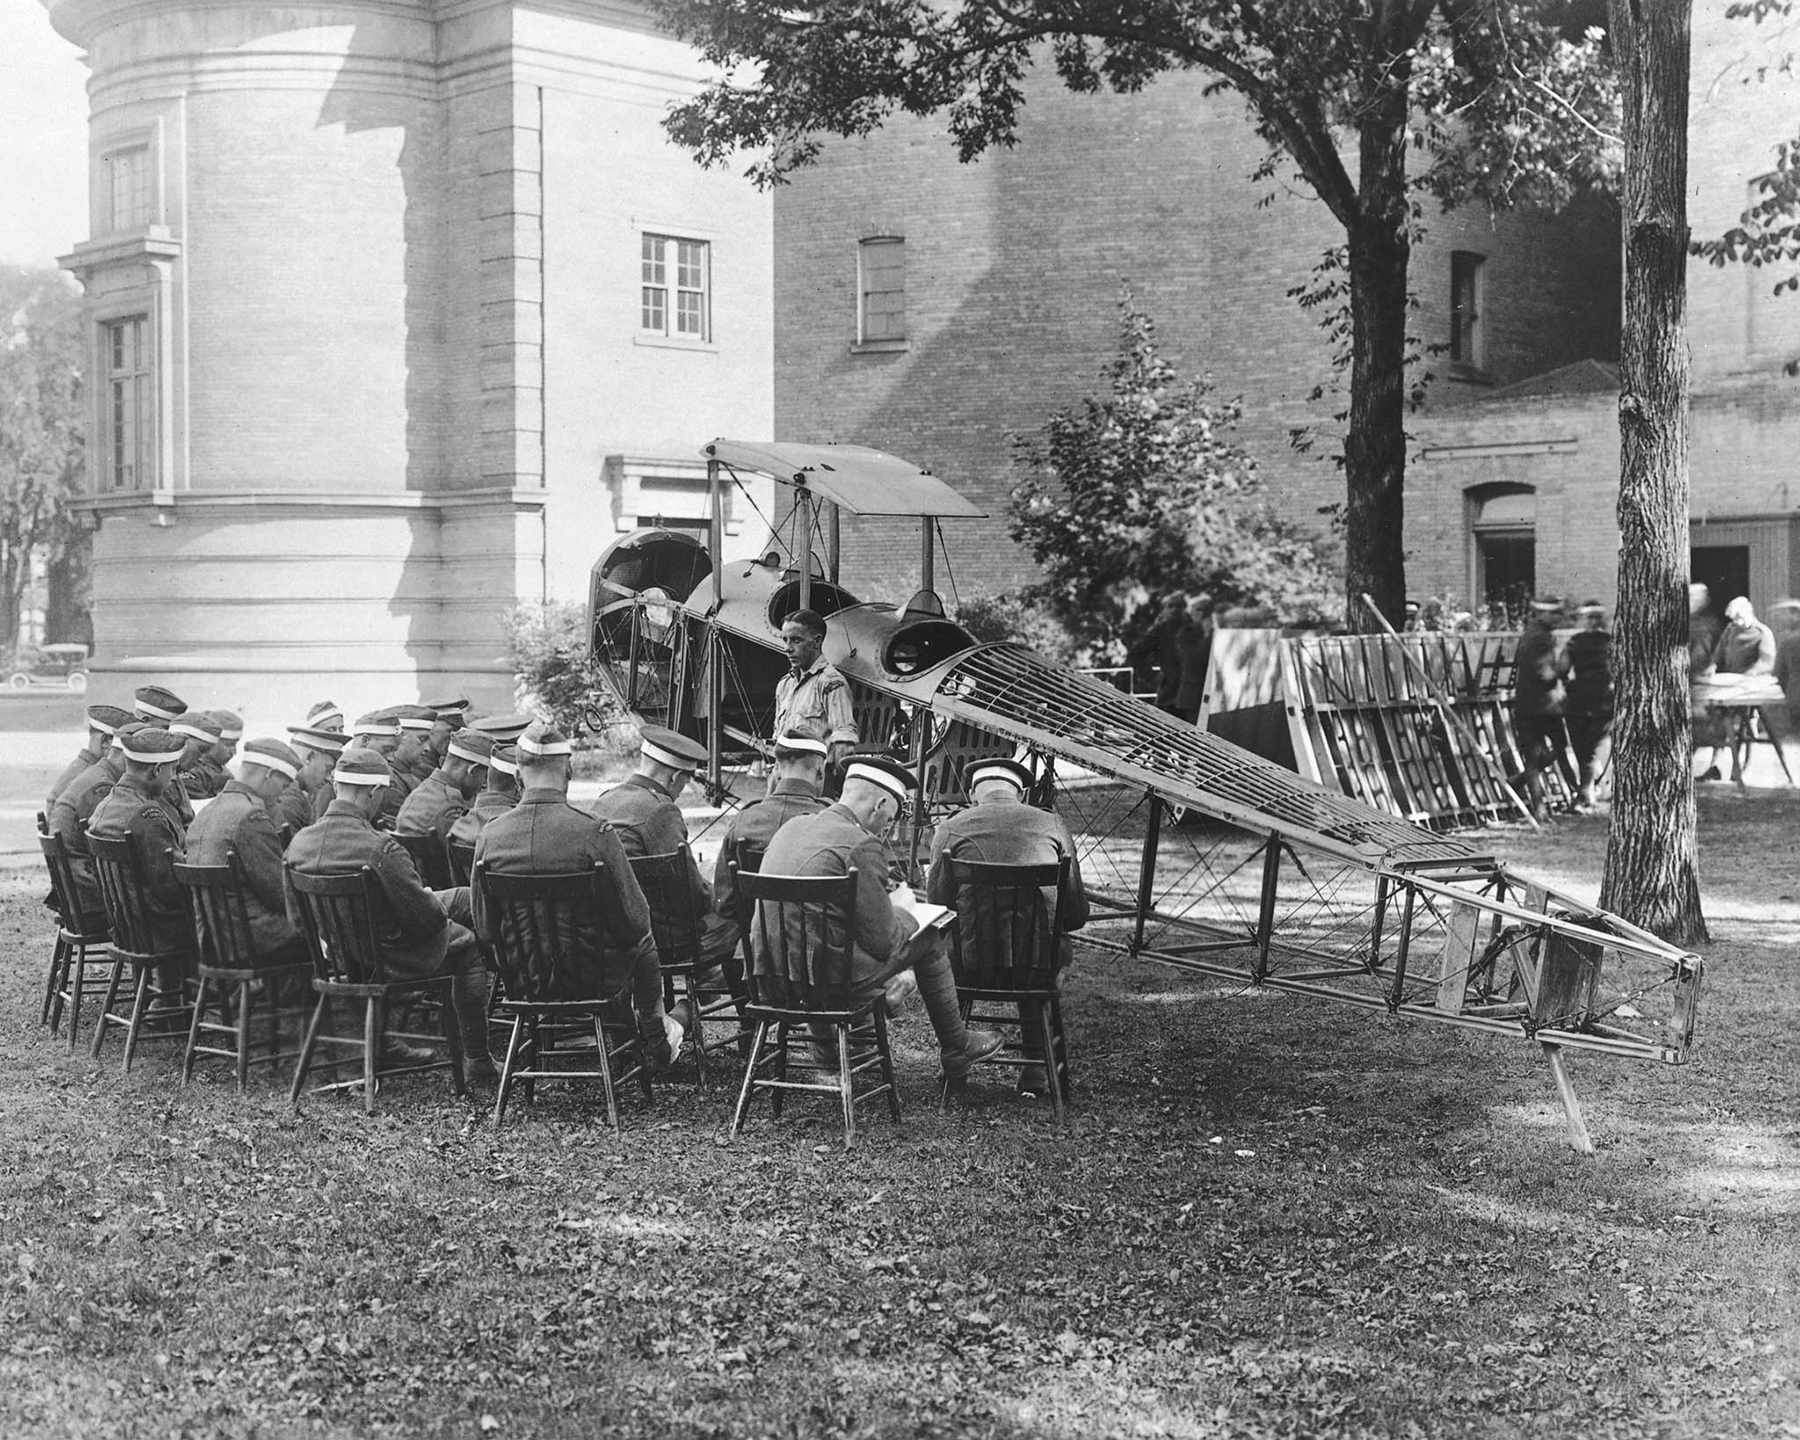 Students at the School of Aeronautics, located at the University of Toronto, enjoy a lecture on aircraft construction al fresco, circa 1916. PHOTO: DND Archives, RE-19065-13